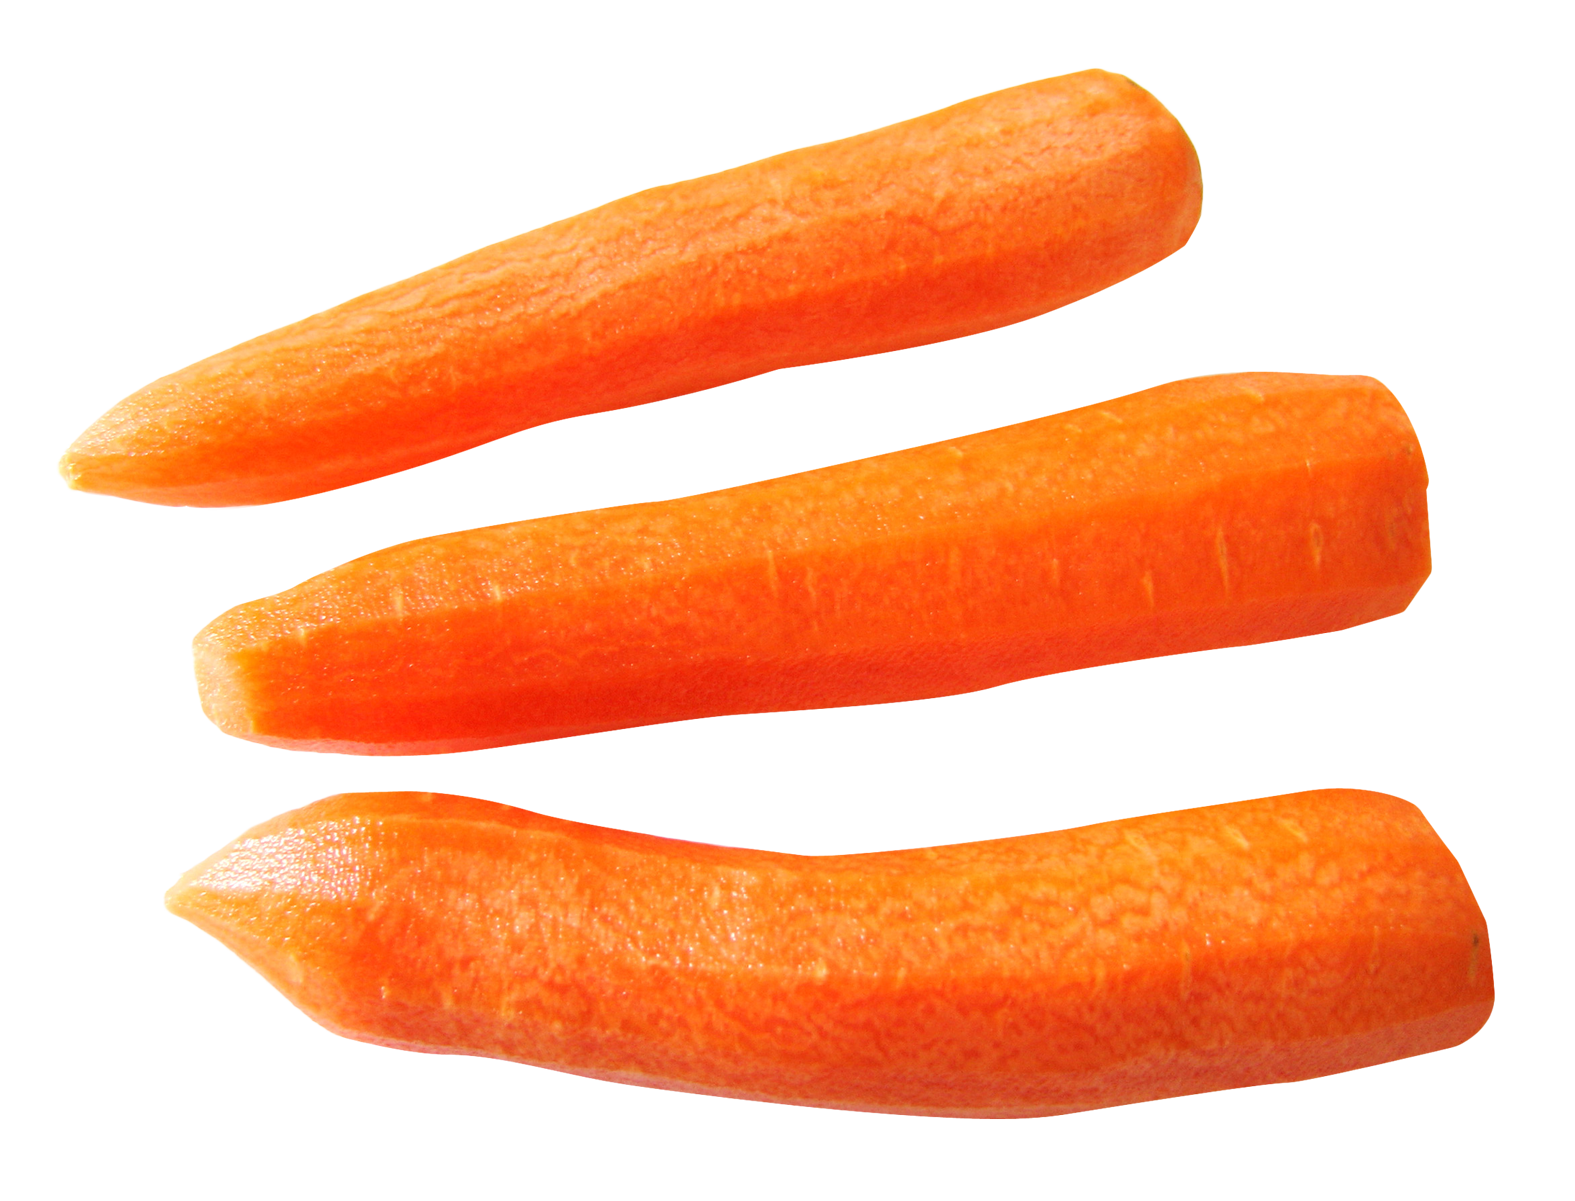 Carrot High Quality Photo 25854